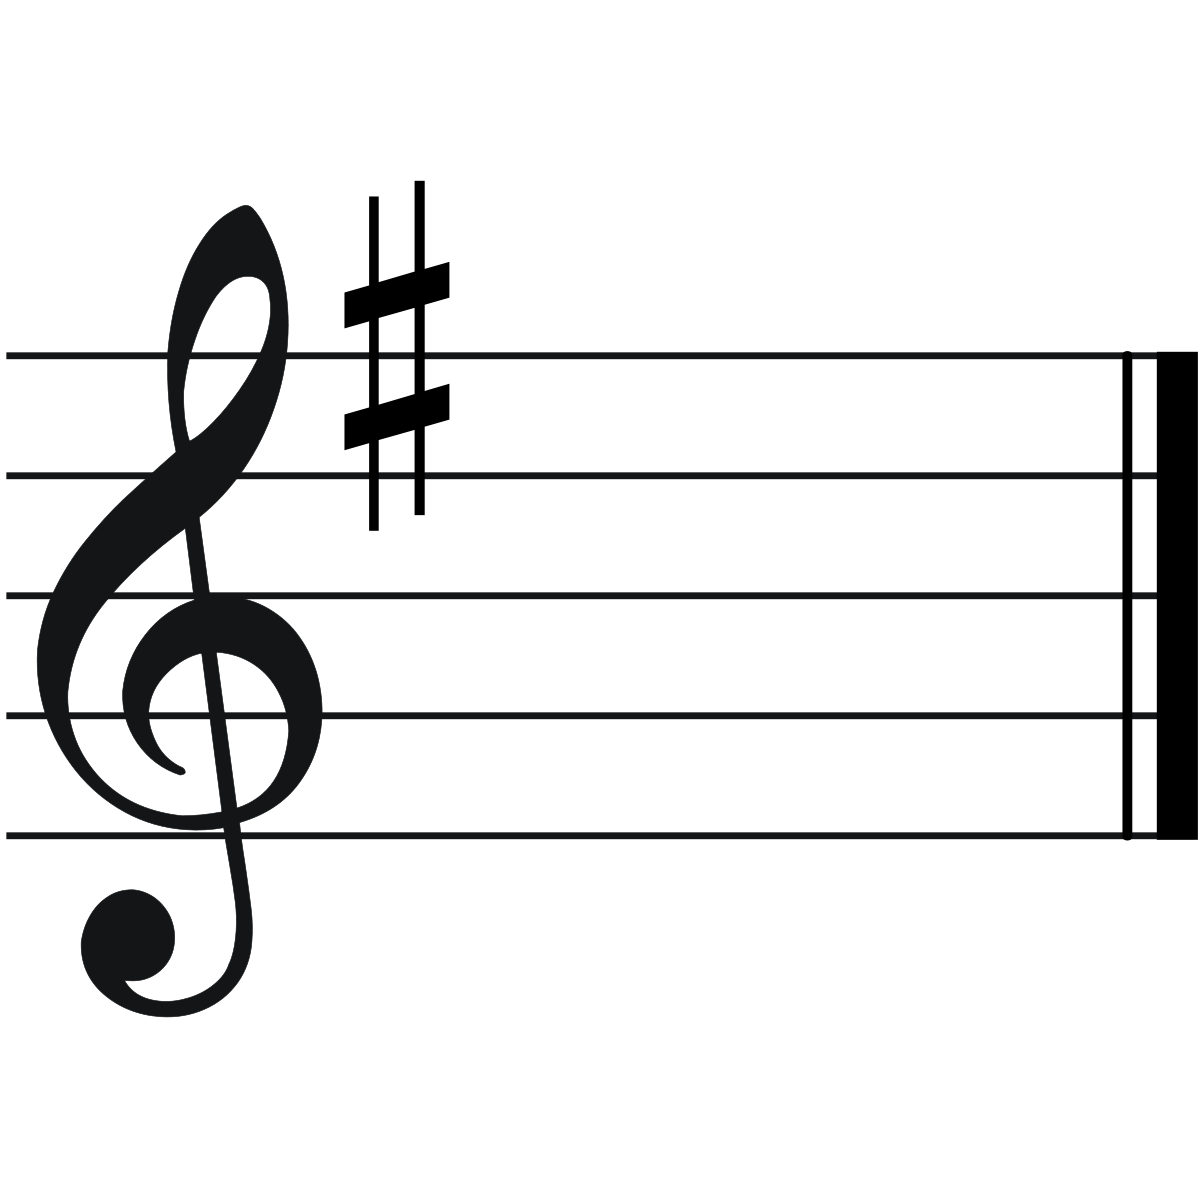 Piano clipart chord. G major wikipedia